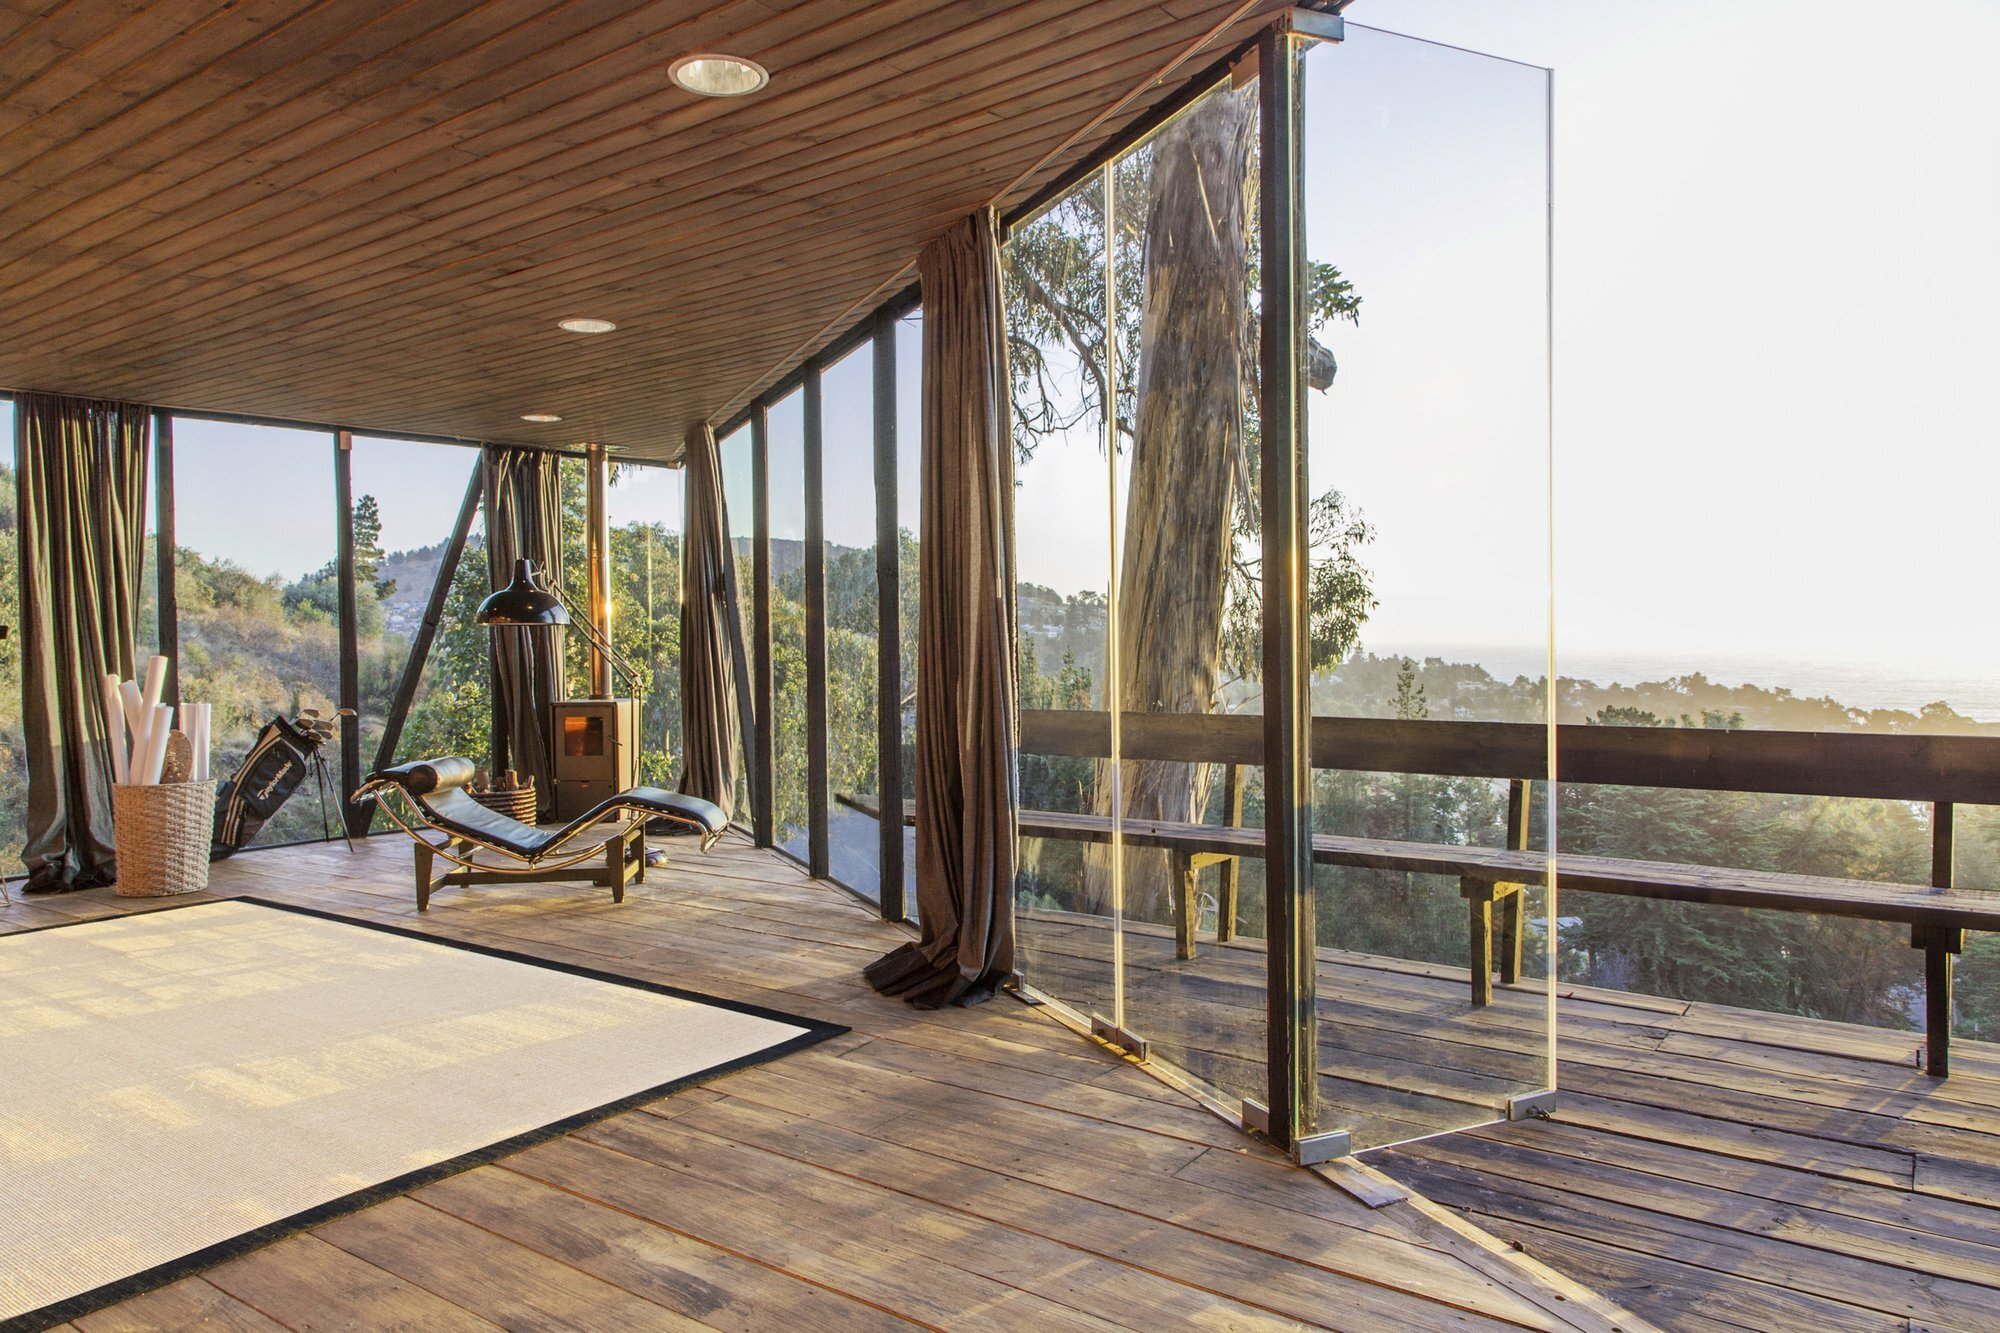 Pigeon Loft - Schmidt Arquitectos Asociados - Chile - View from Windows - Humble Homes